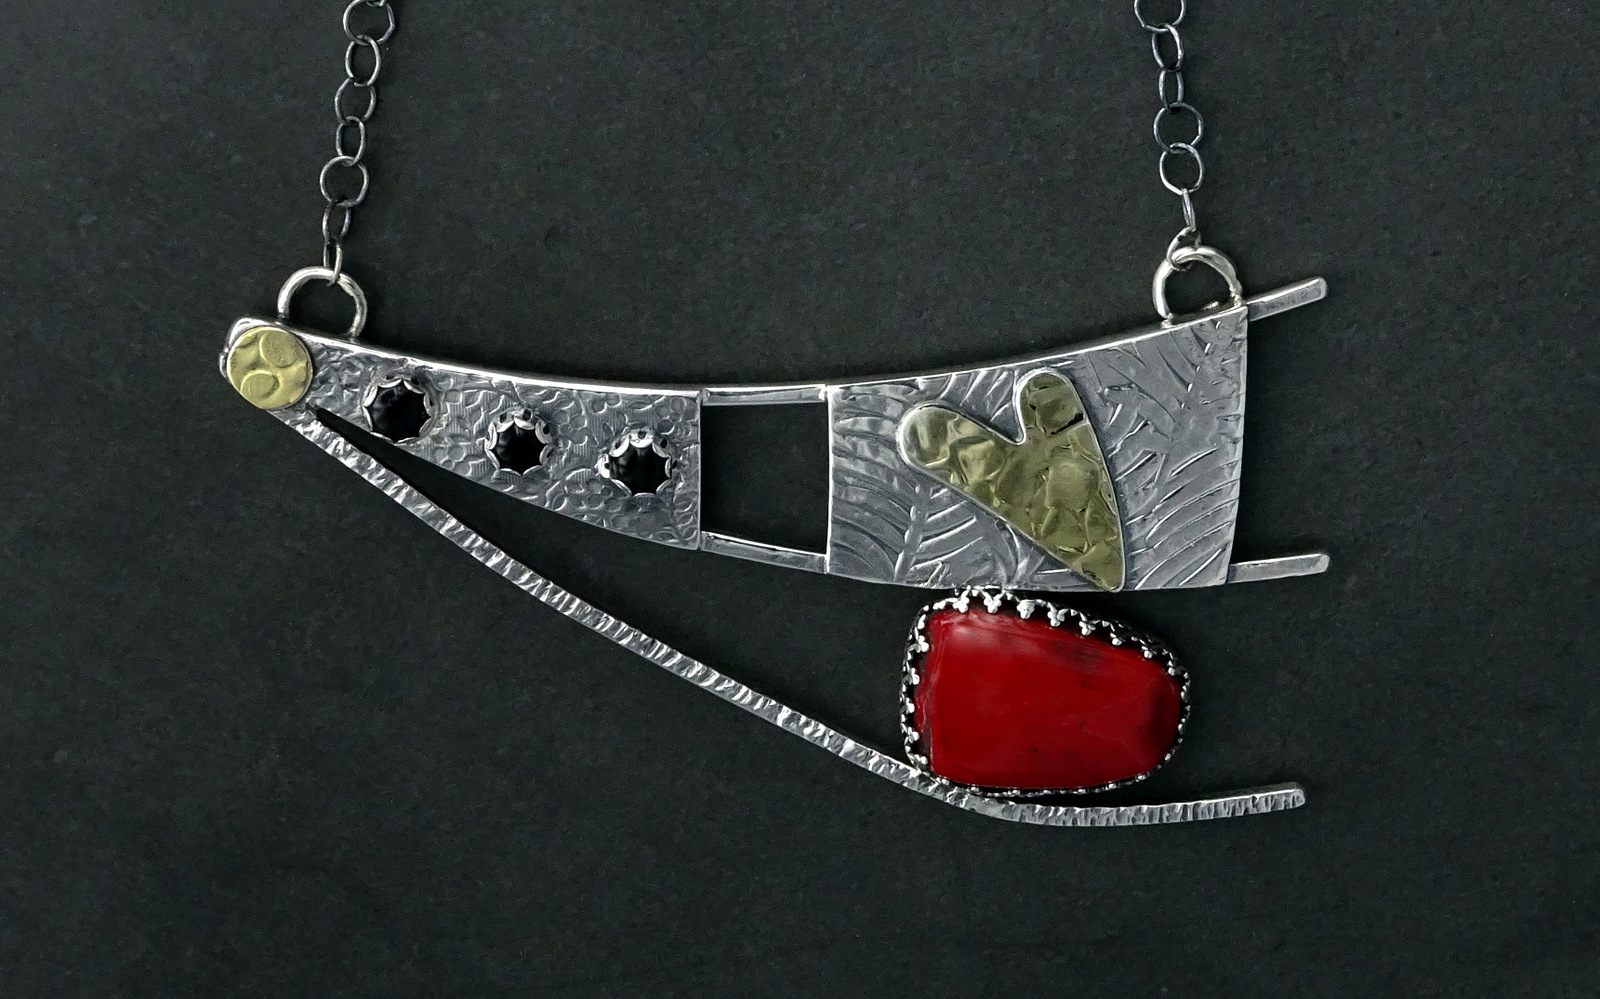 LARGE DANCING SPIRIT NECKLACE WITH RED STONE,  Pendant - 4.25 x 2.25 inches, Chain Length - 21 inches